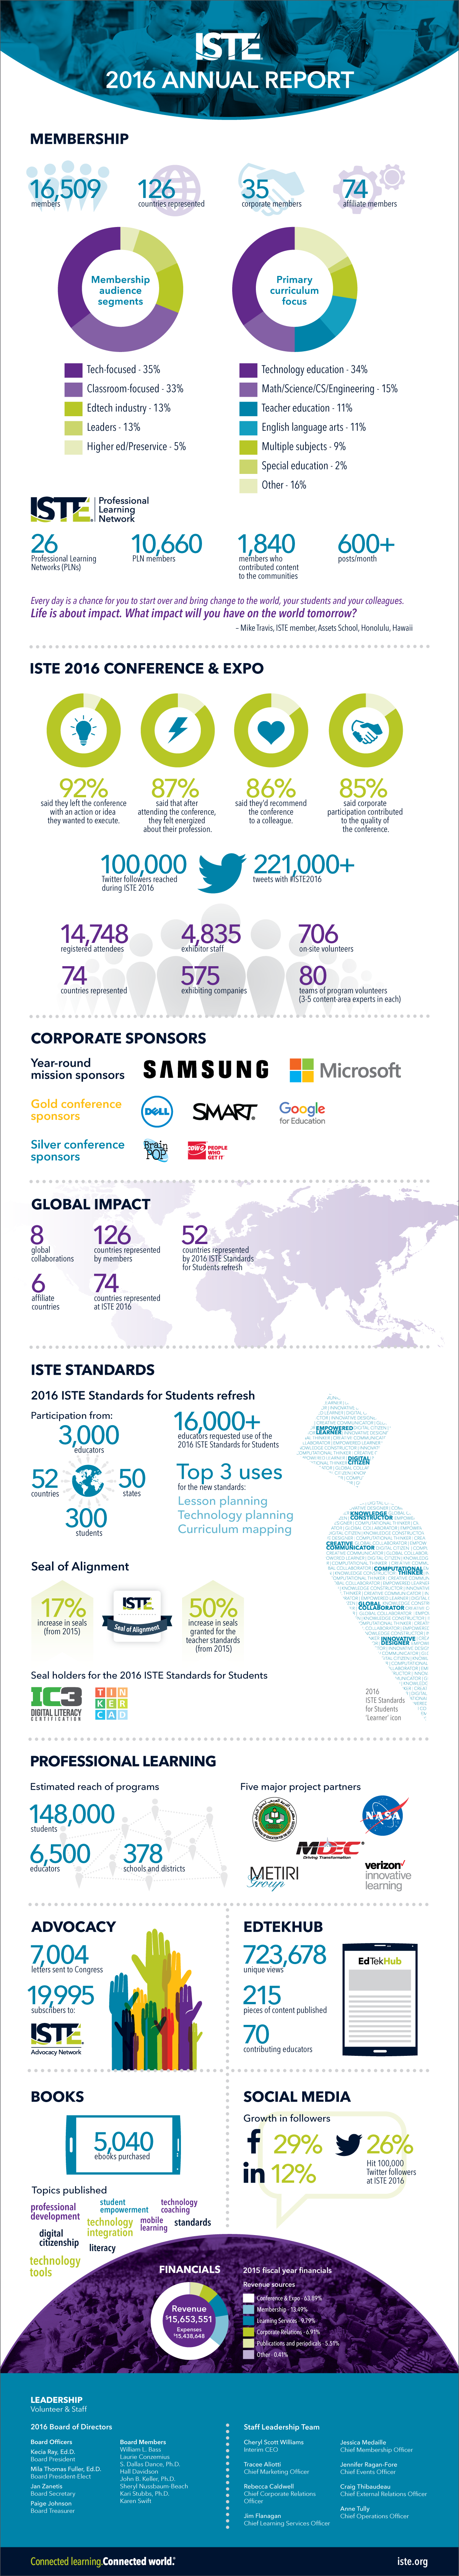 iste-annual-report_2016_v6_website.png